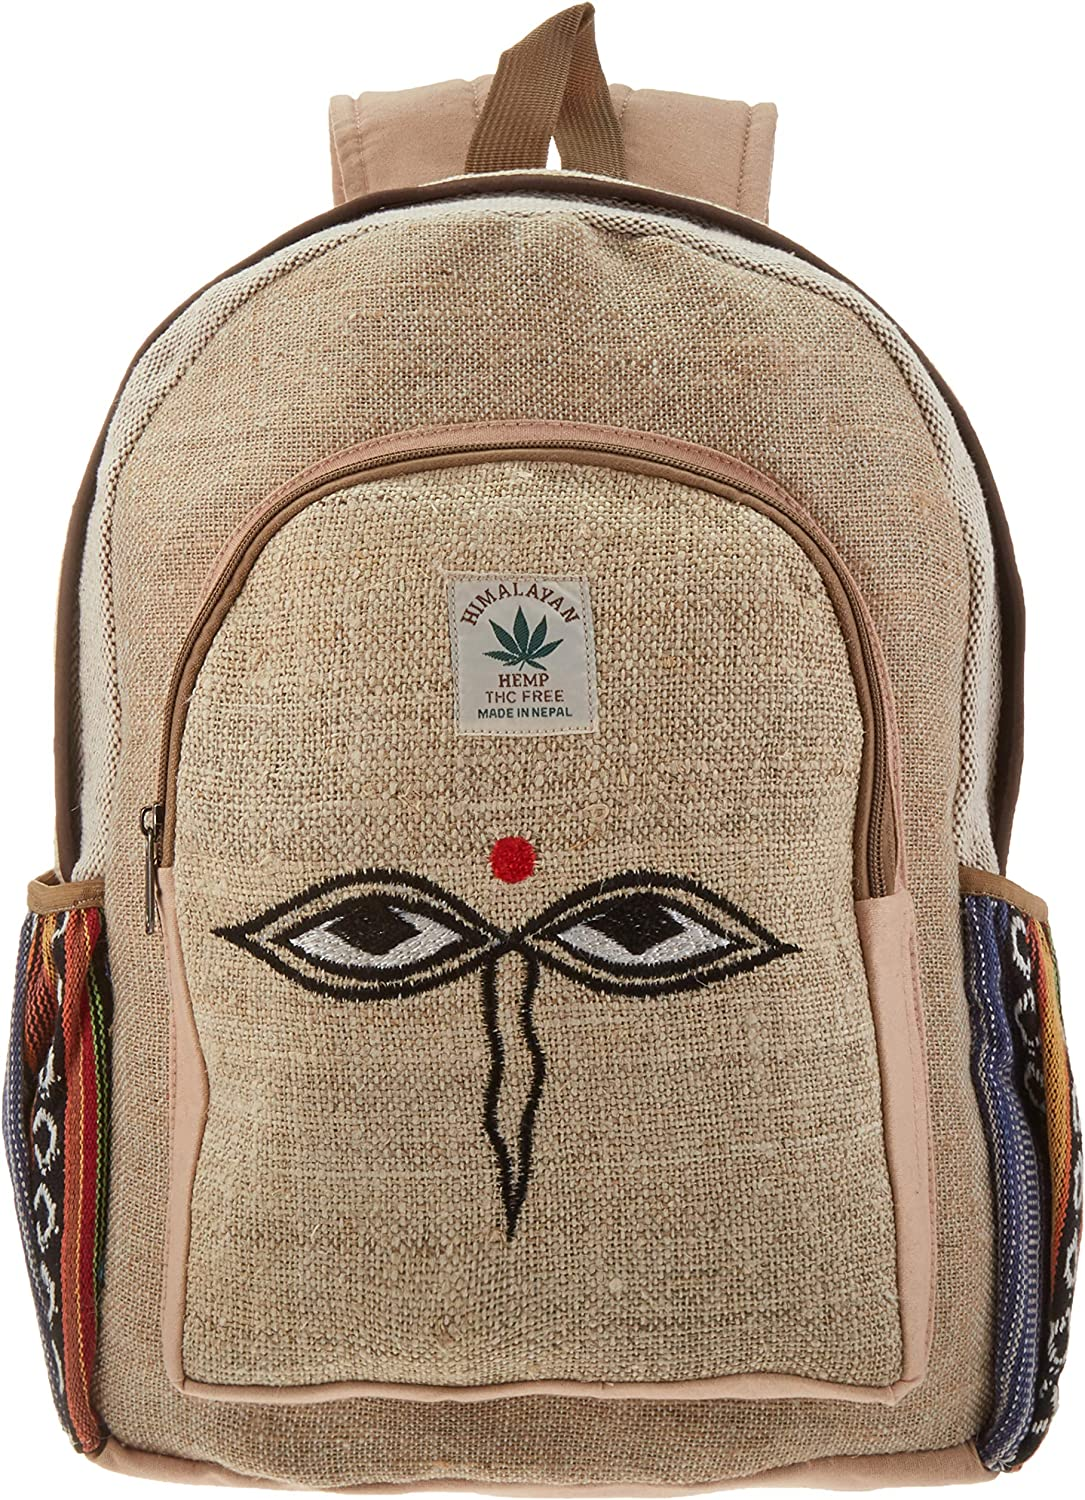 All Natural Handmade Large Multi Pocket Hemp Backpack (THC FREE) with Laptop Sleeve - Fashion Cute Travel School College Shoulder Bag/Bookbags/Daypack